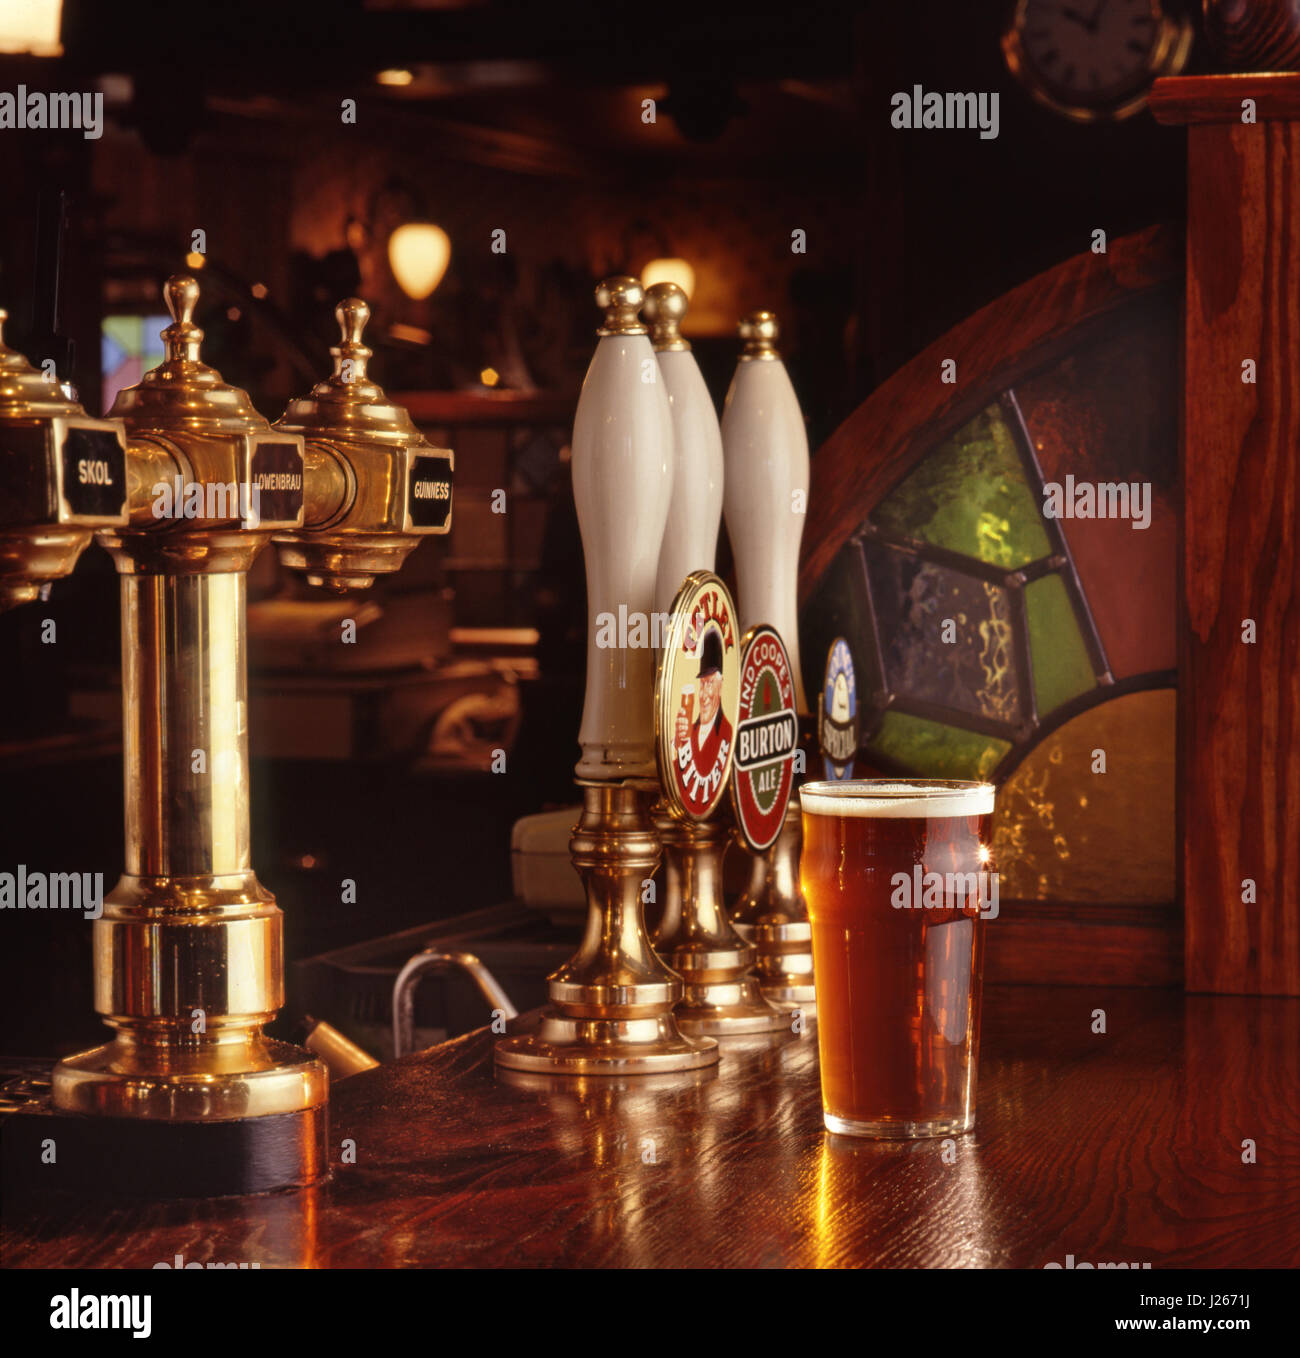 Pint of bitter served on the wooden bar surface of a warm, typical, traditional inviting English public house, with - Stock Image